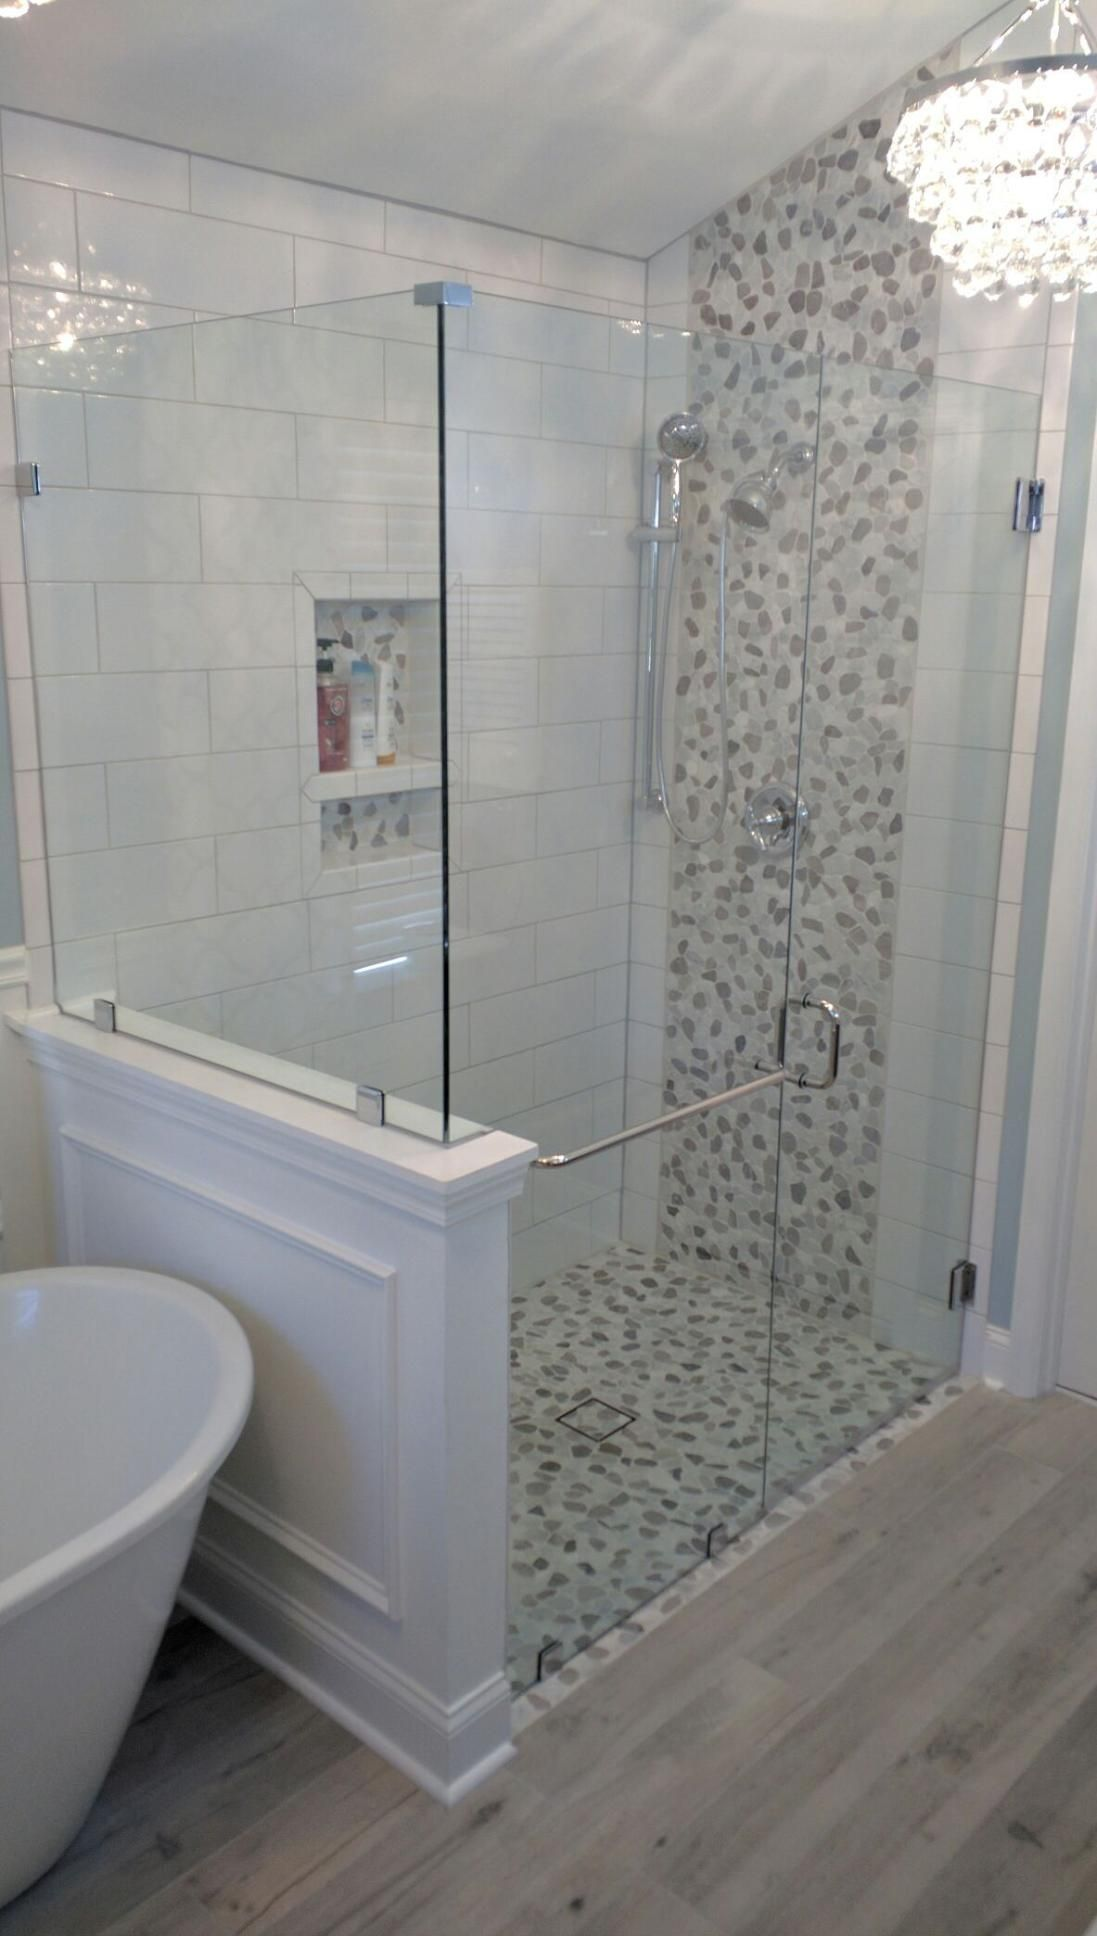 Carrera pebbles frameless shower glass large white subway tile carrera pebbles frameless shower glass large white subway tile curbless shower transition dailygadgetfo Images